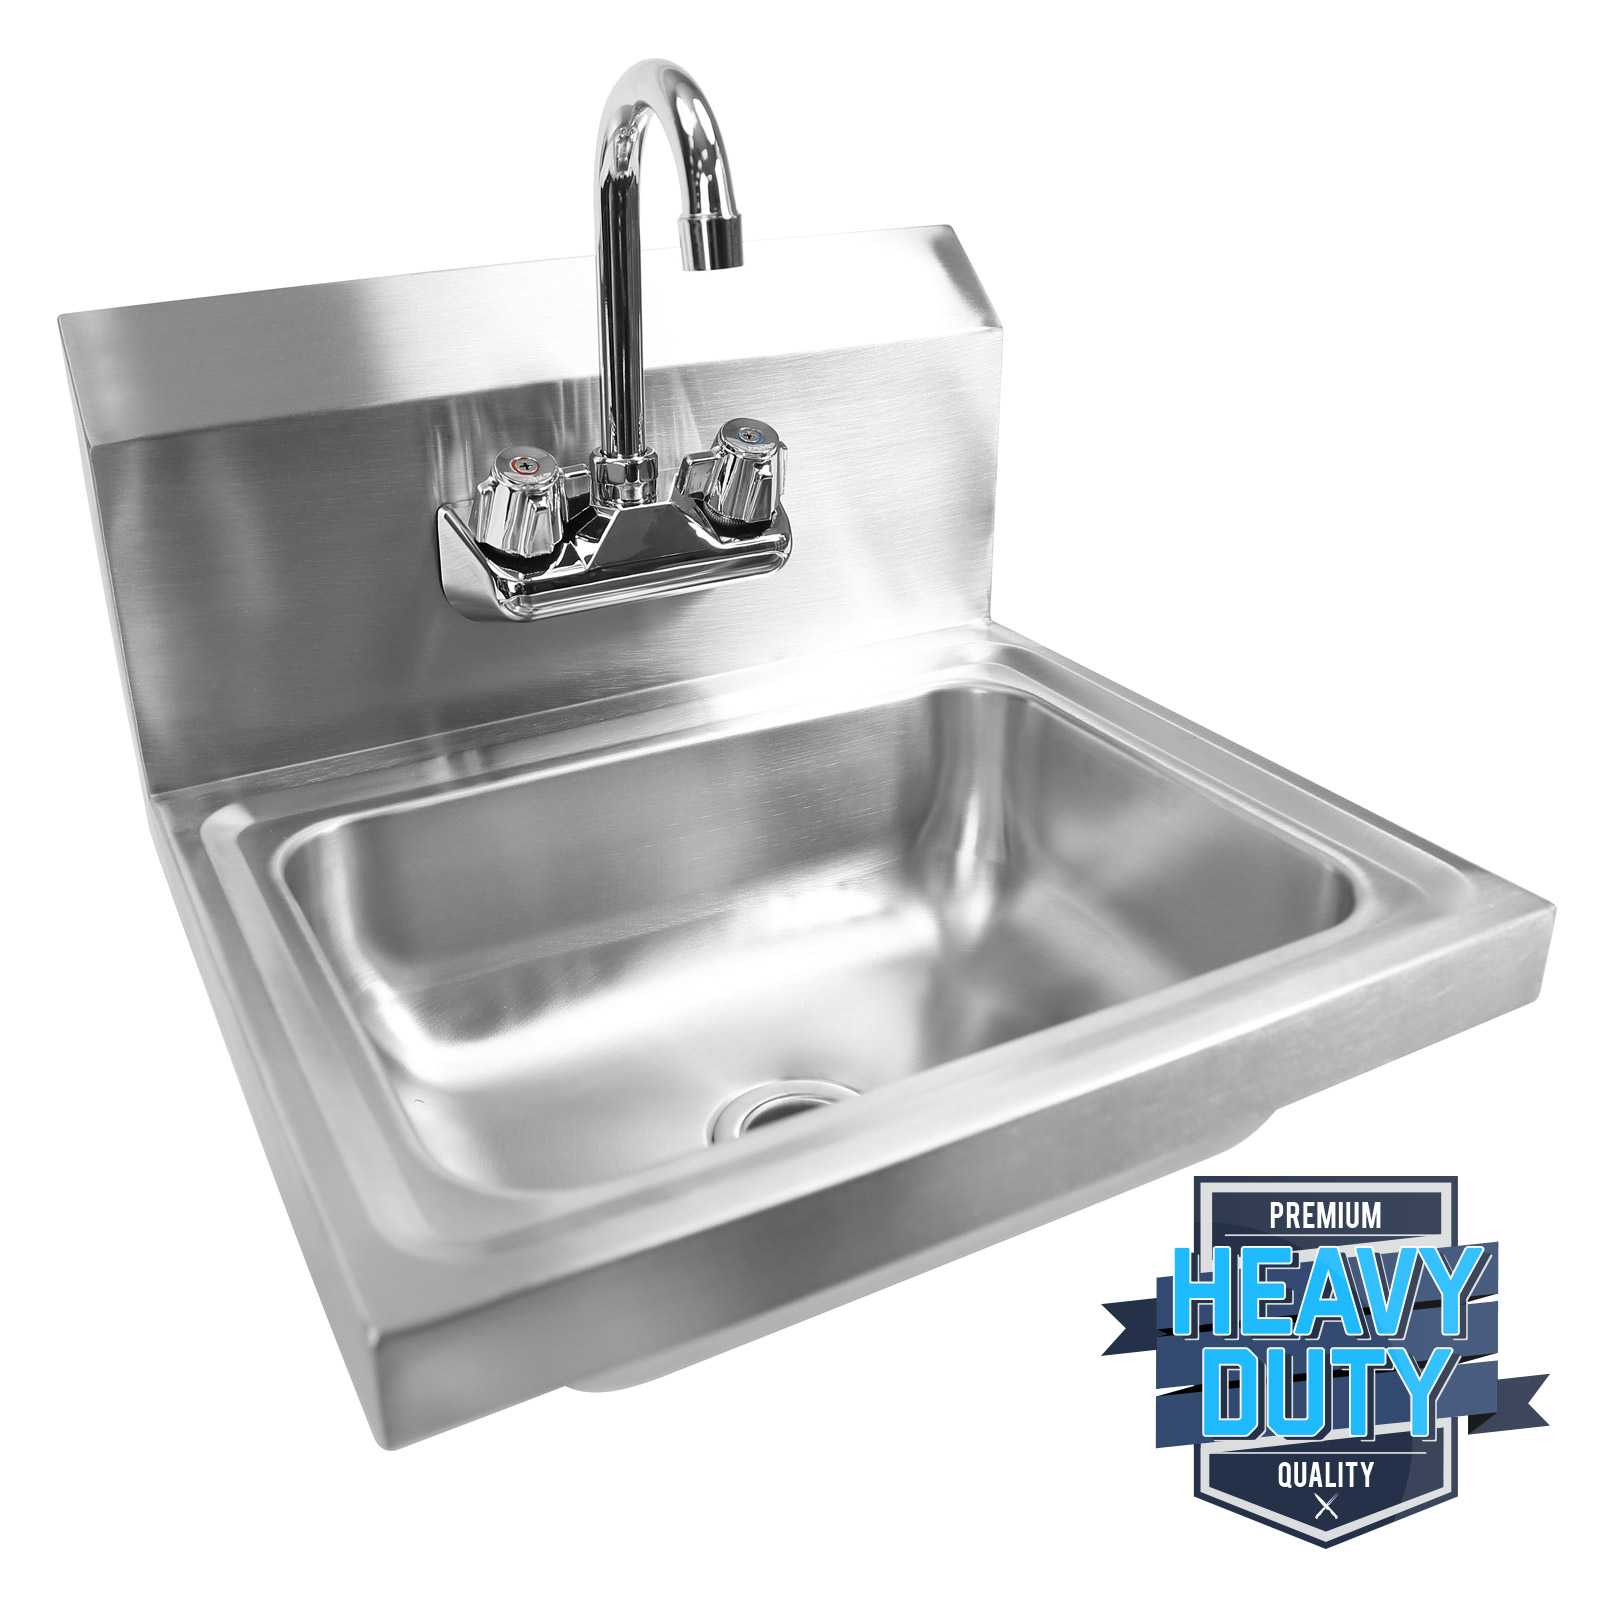 Stainless Wall Mount Sink : Commercial Stainless Steel Hand Wash Washing Wall Mount Sink Kitchen ...